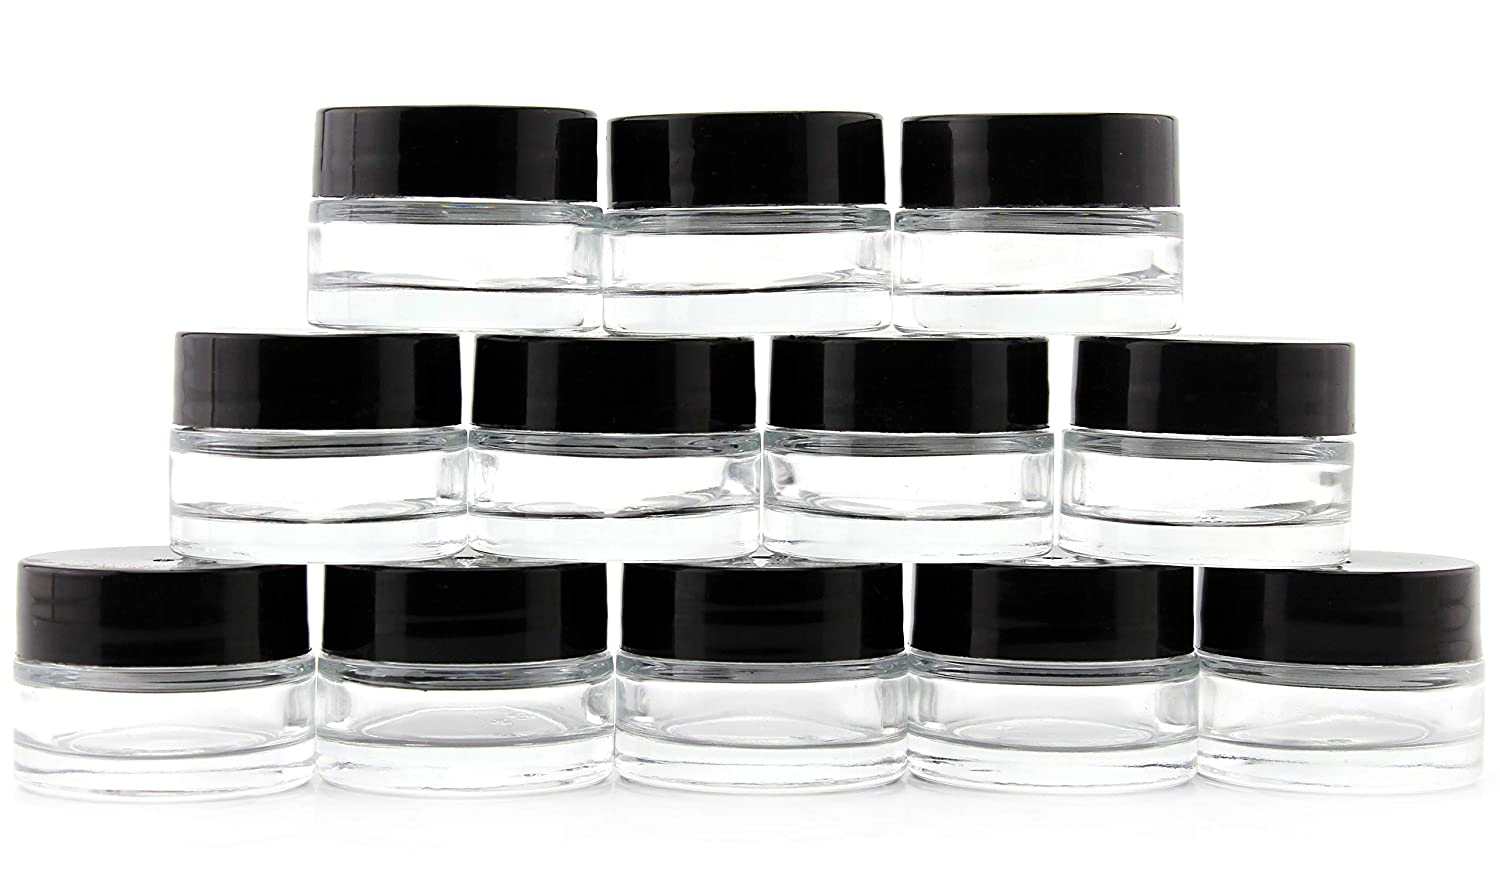 7-Milliliter Clear Glass Balm Jars 12-Pack 1 4 oz Cosmetic Jars with Lined Black Plastic Lids